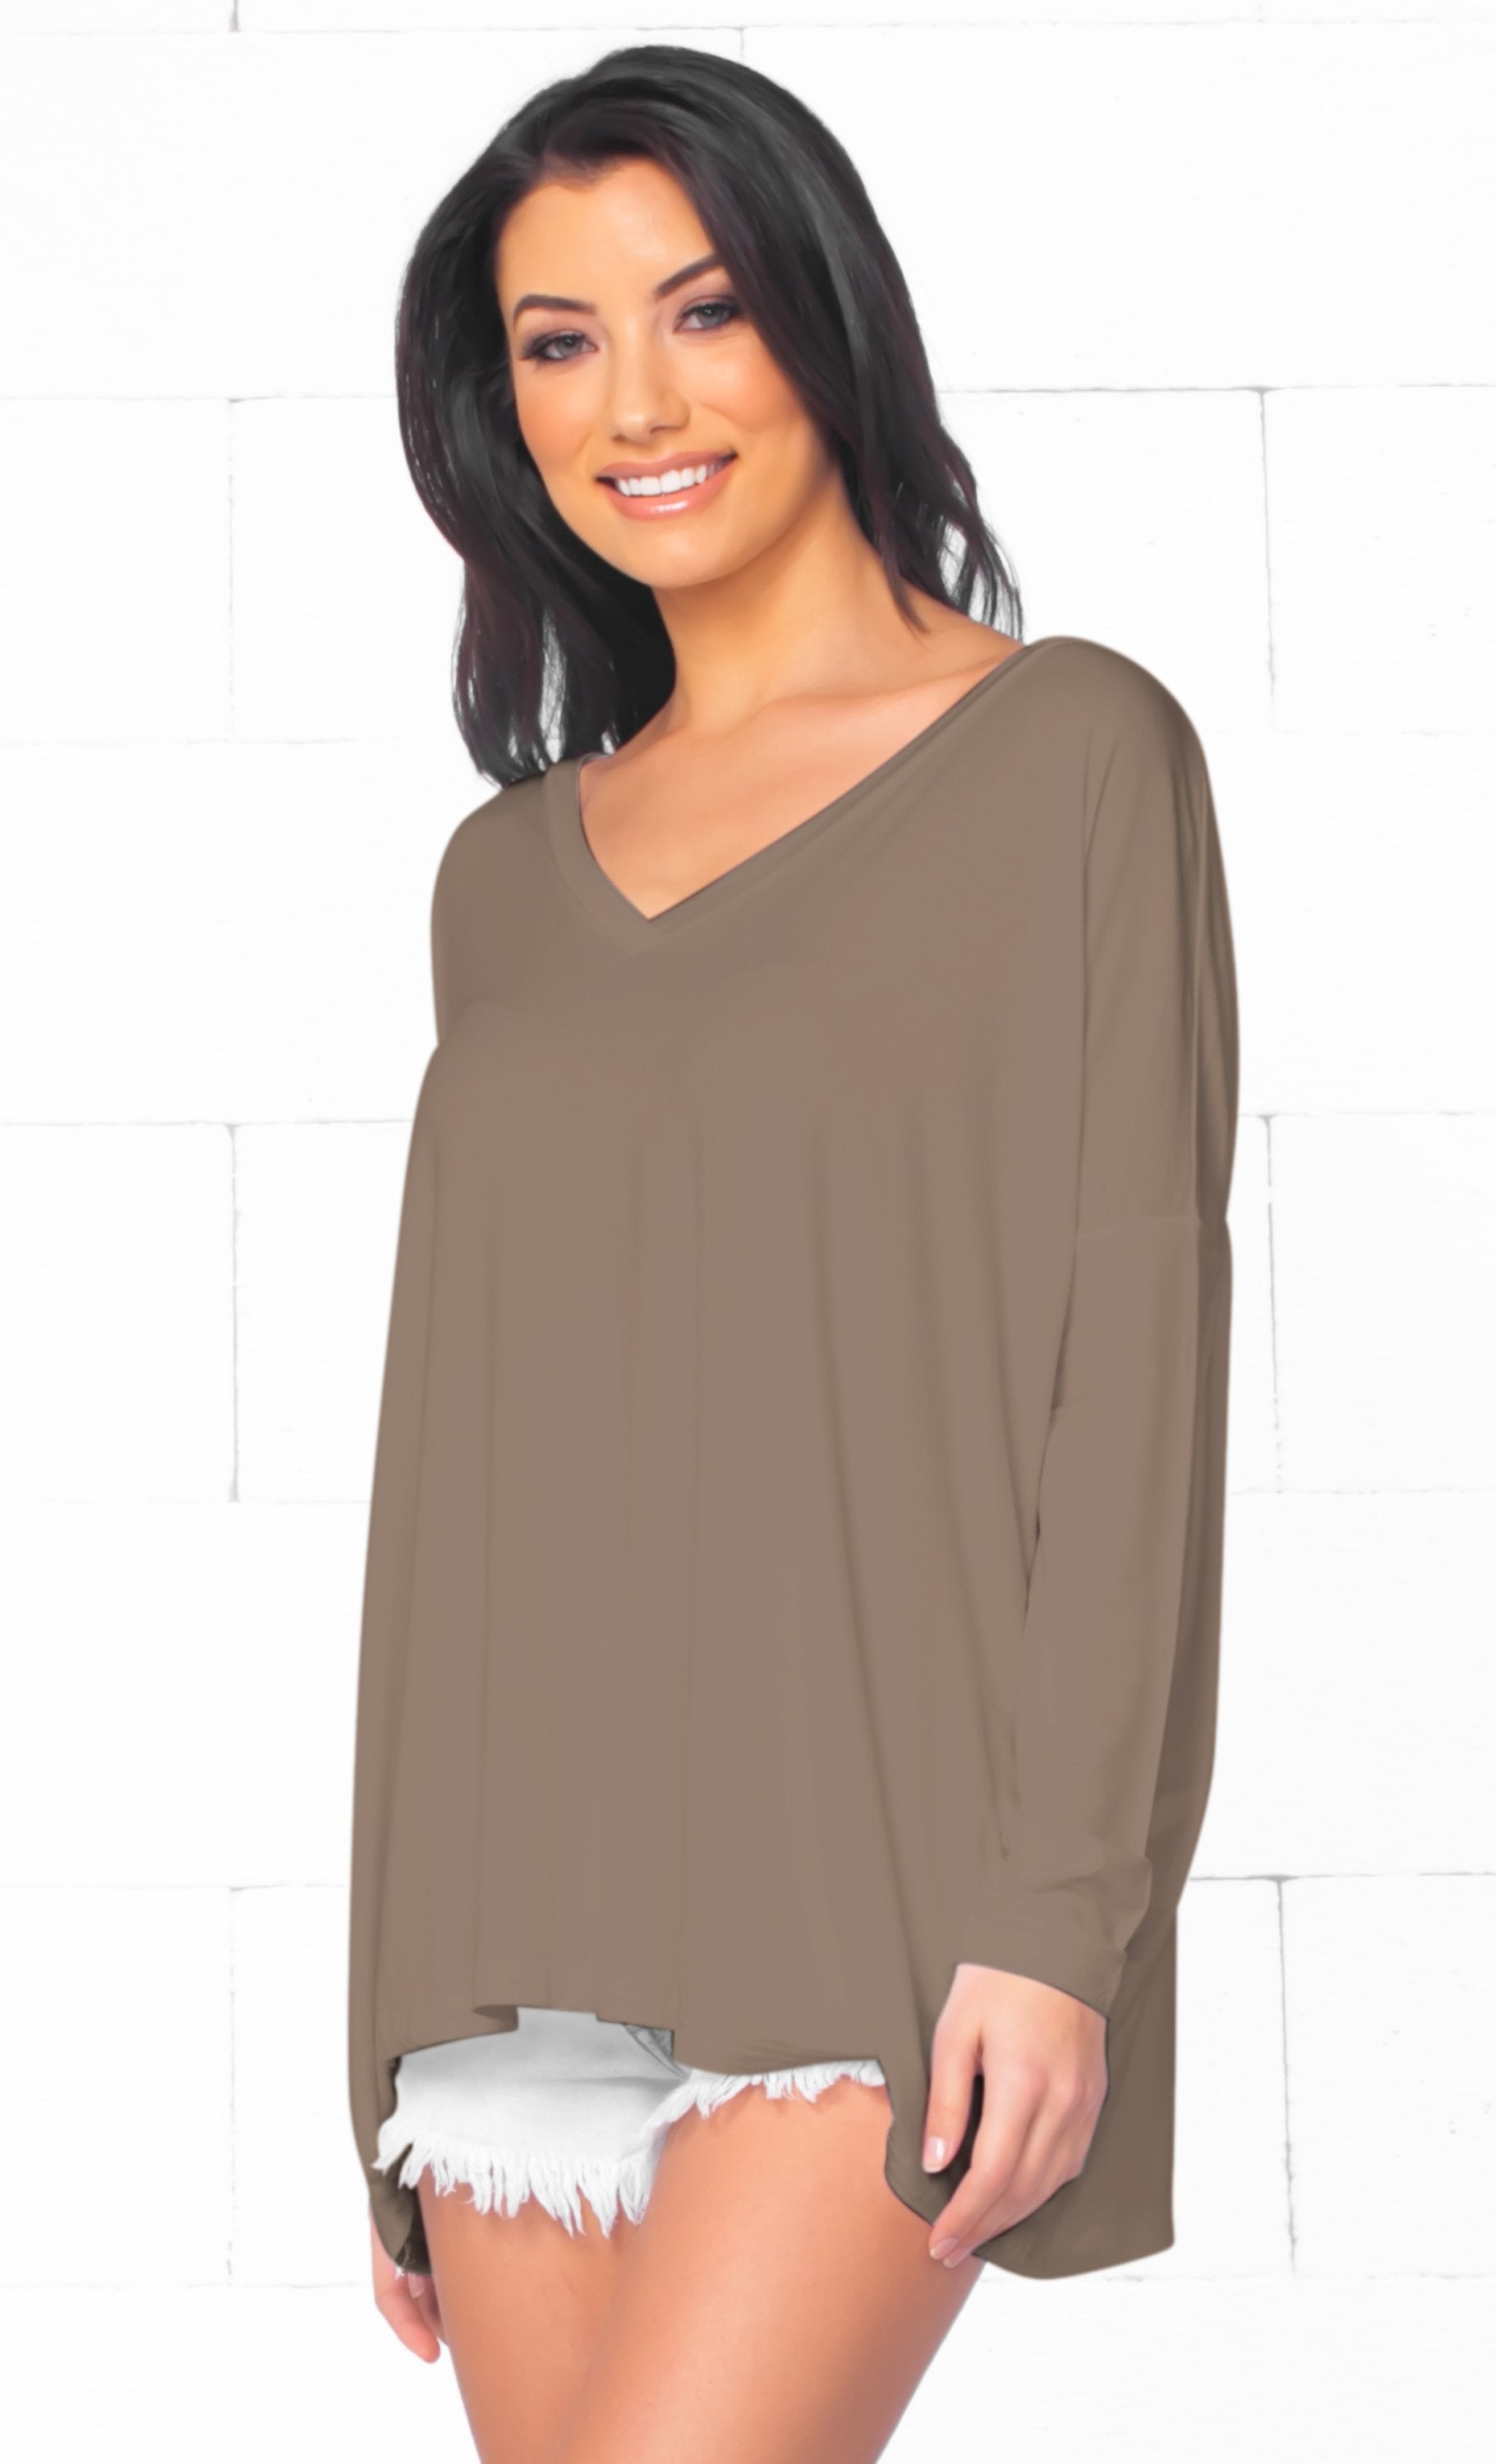 Piko 1988 Bamboo Mocha Taupe Medium Brown Long Dolman Sleeve V Neck Piko Bamboo Basic Loose Tunic Tee Top